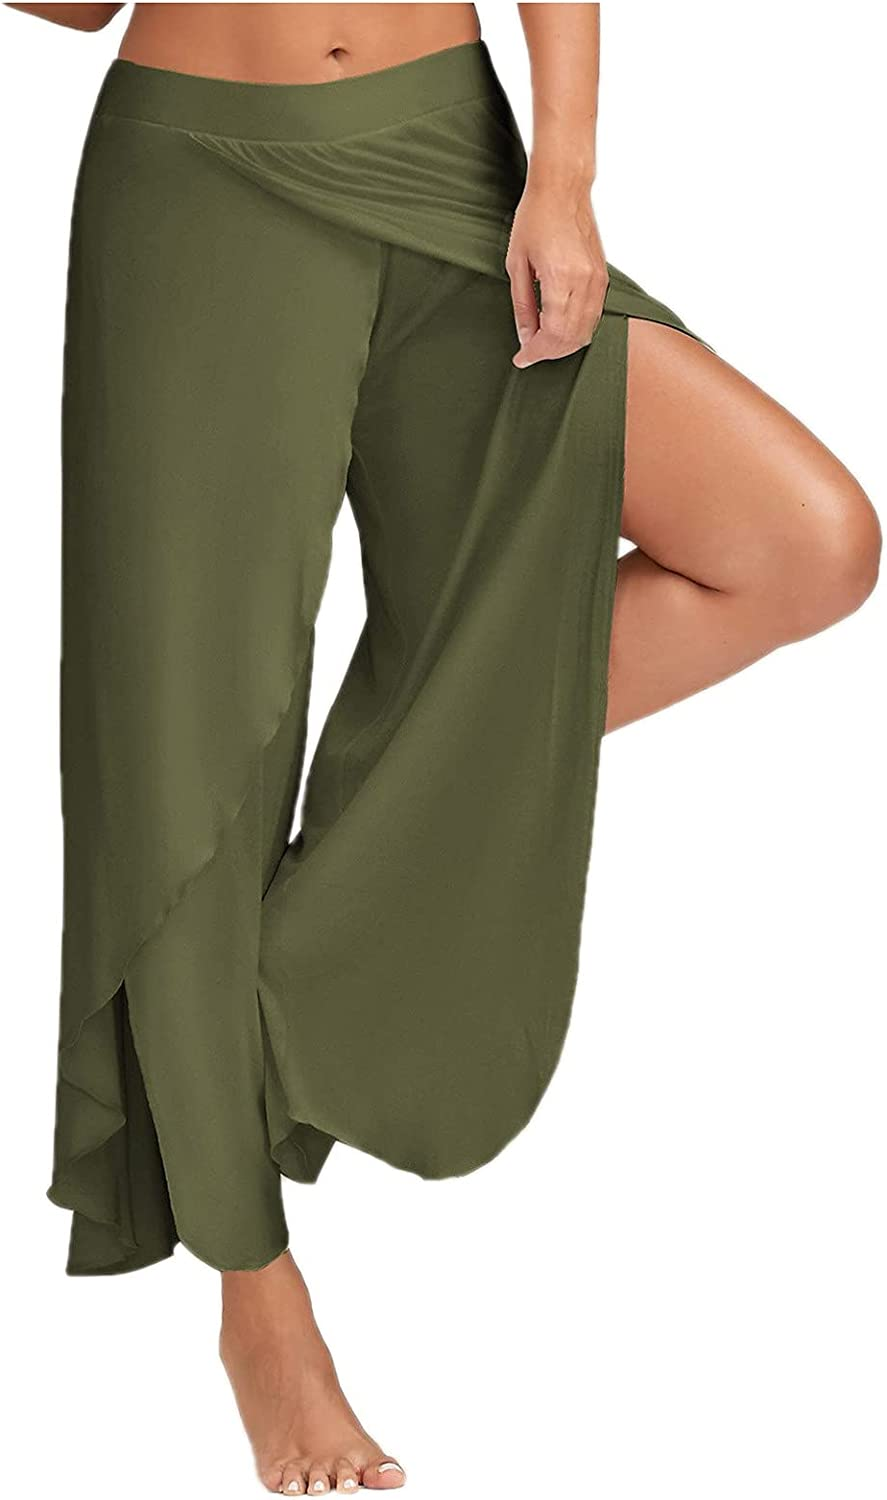 YUNDAN High Slit Selling Harem Pants for Womens Trou Solid Max 48% OFF Casual Hippie